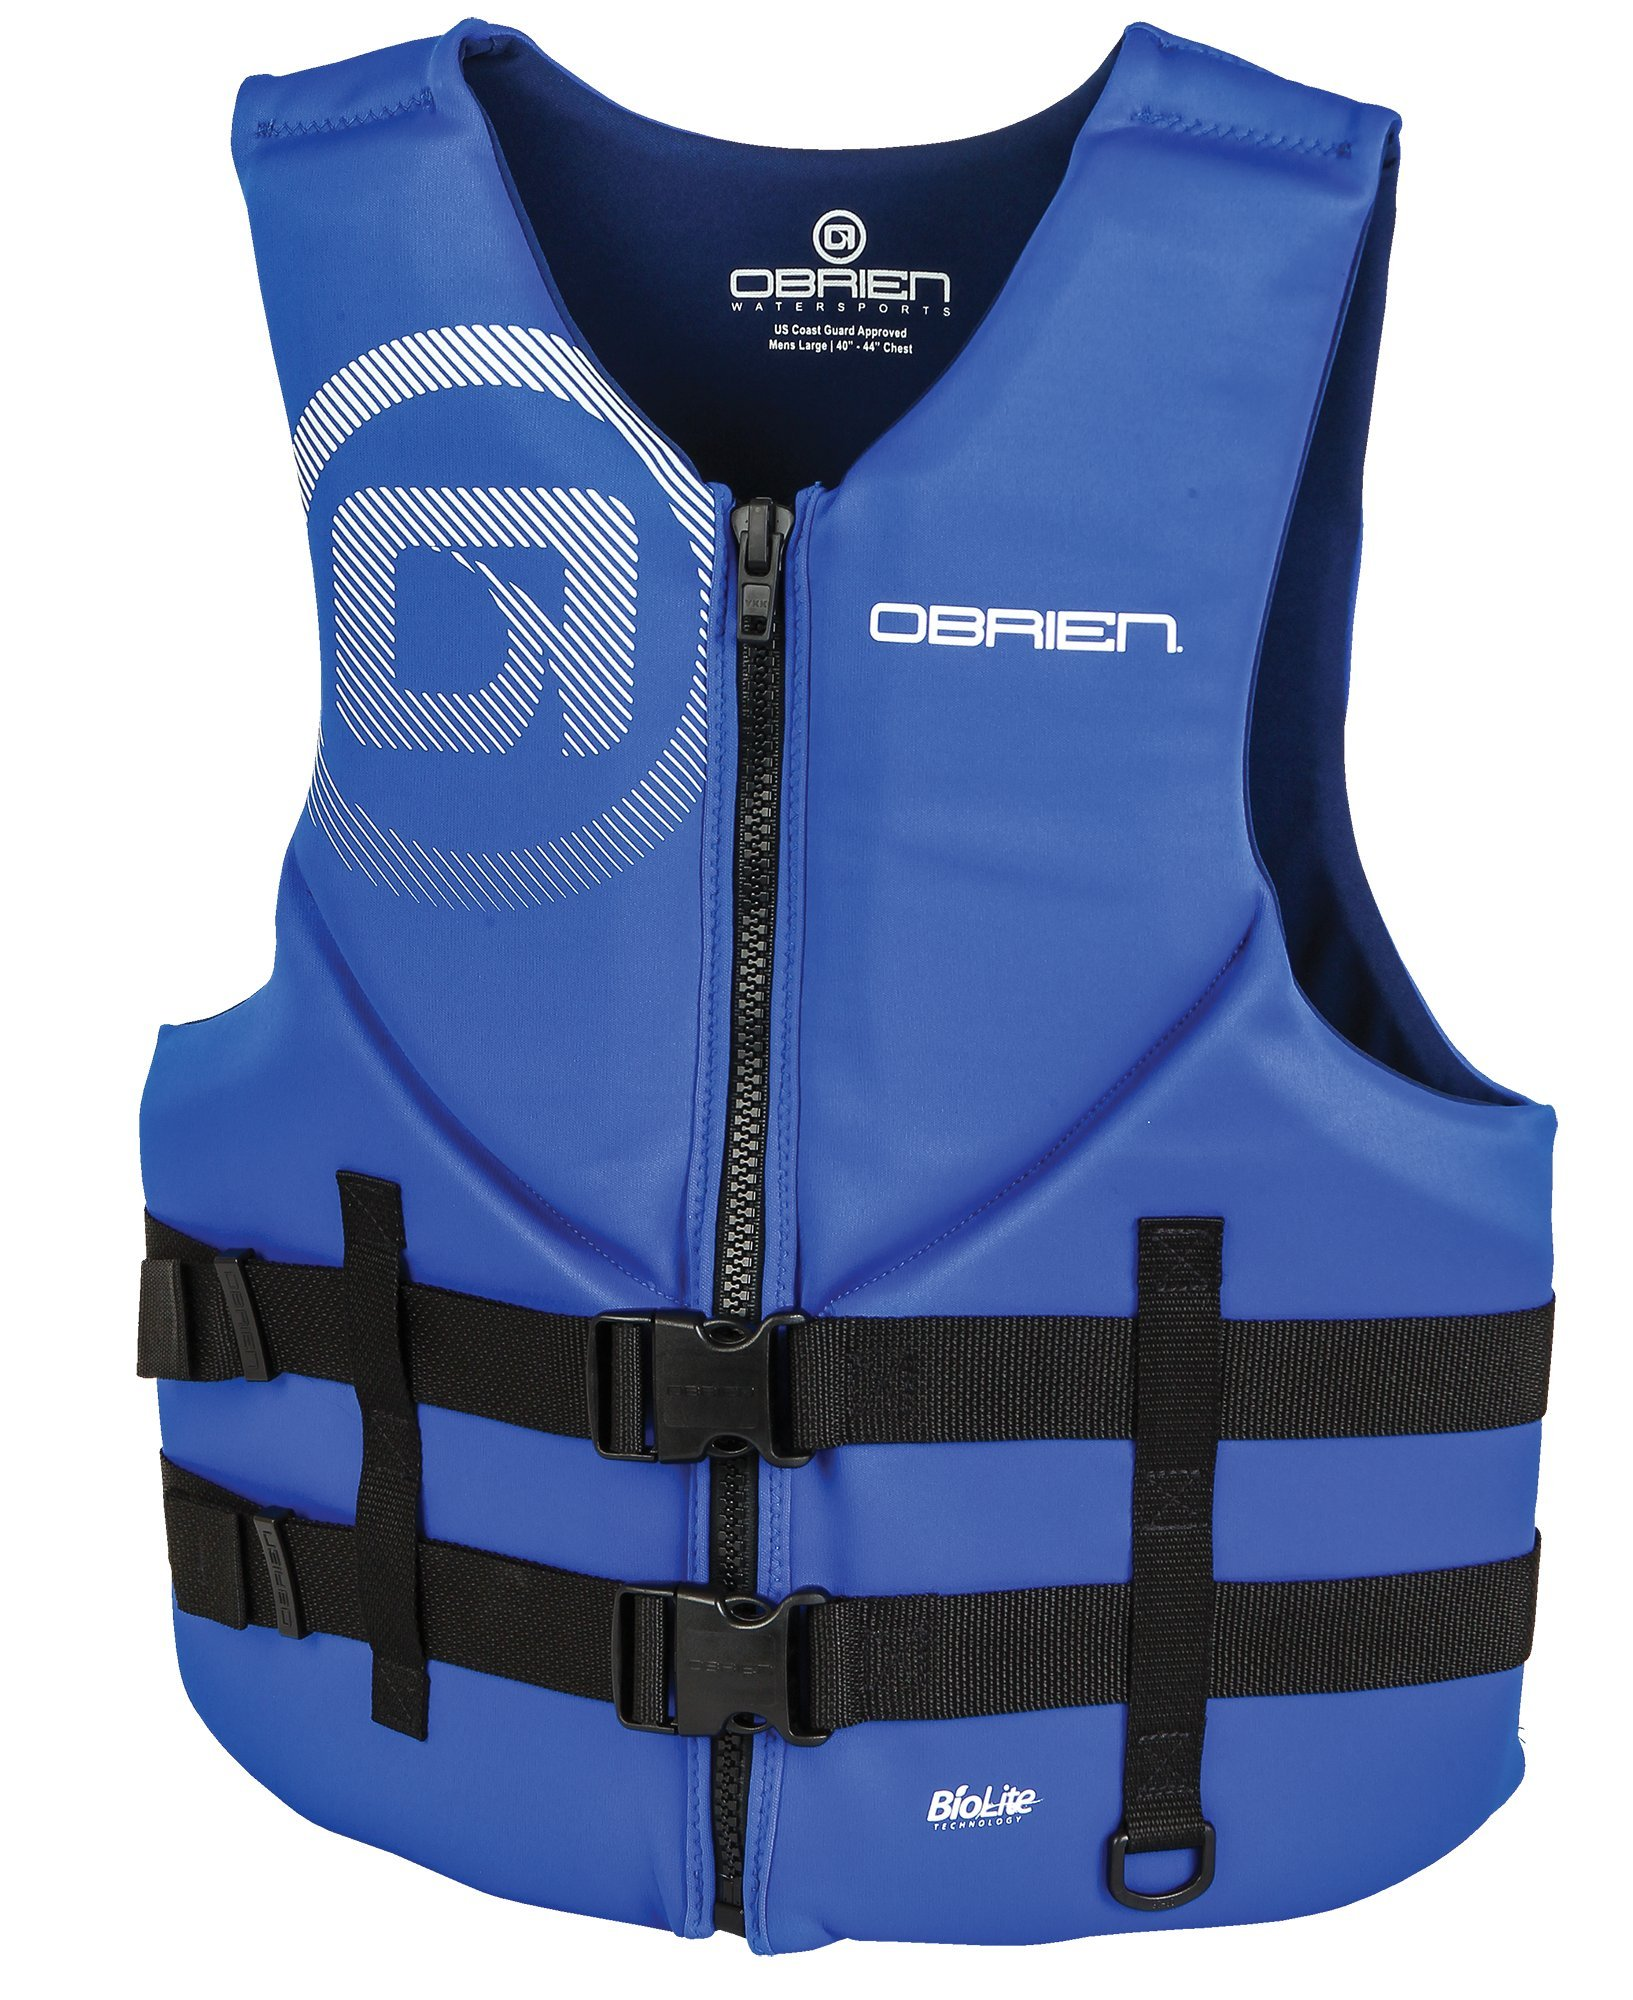 O'Brien Men's Traditional Neoprene Life Jacket, Blue, X-Small by O'Brien